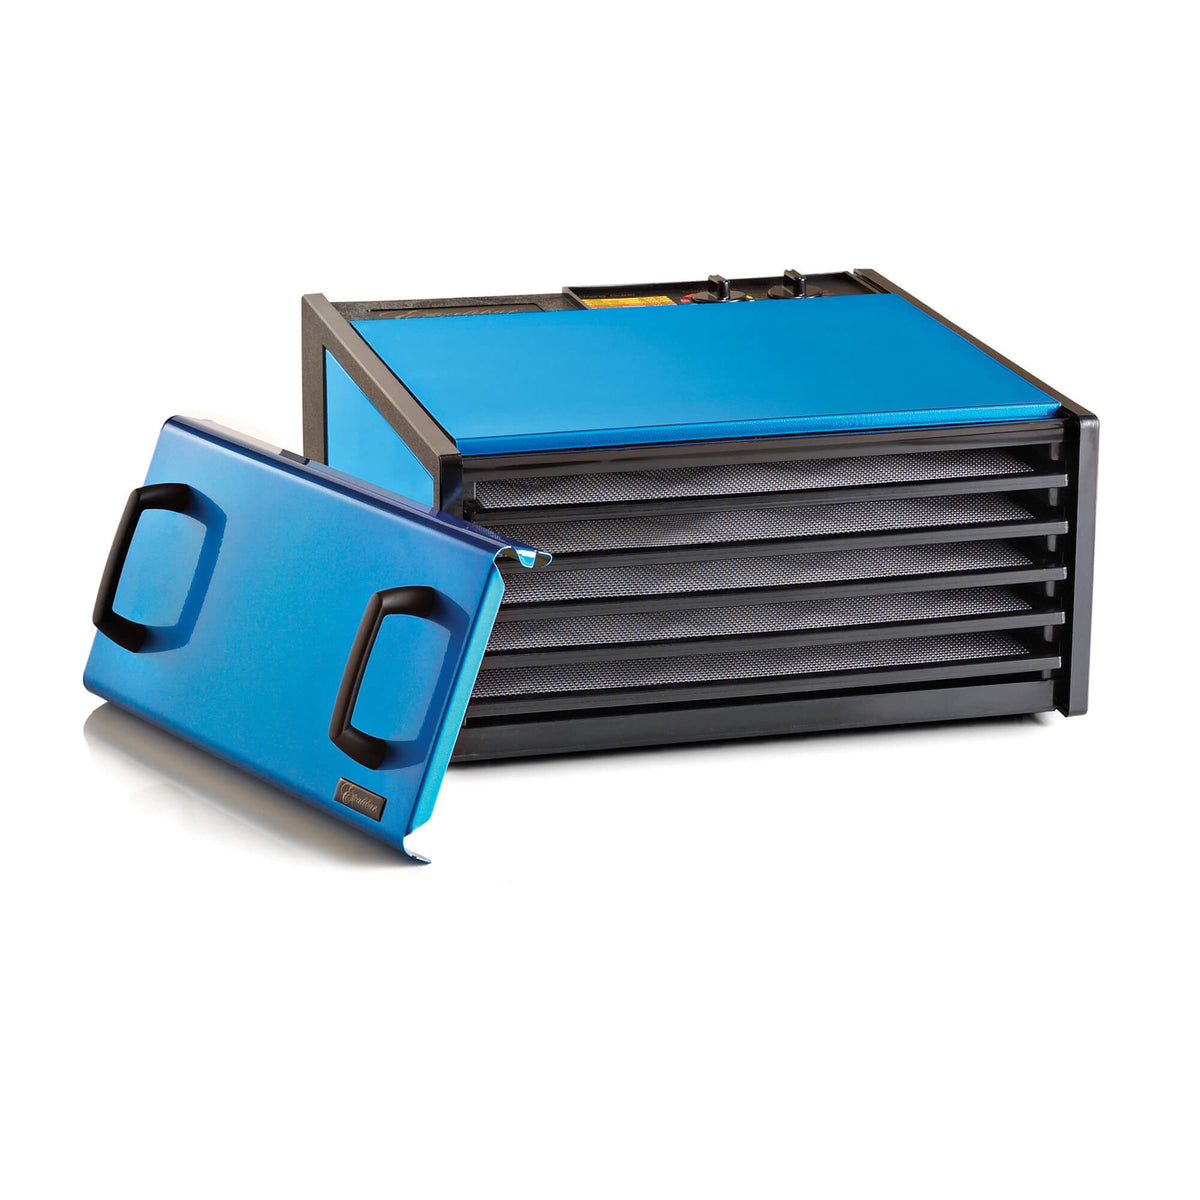 Excalibur D502RB Radiant Blueberry 5 tray stainless steel dehydrator with door propped to the side and trays in.